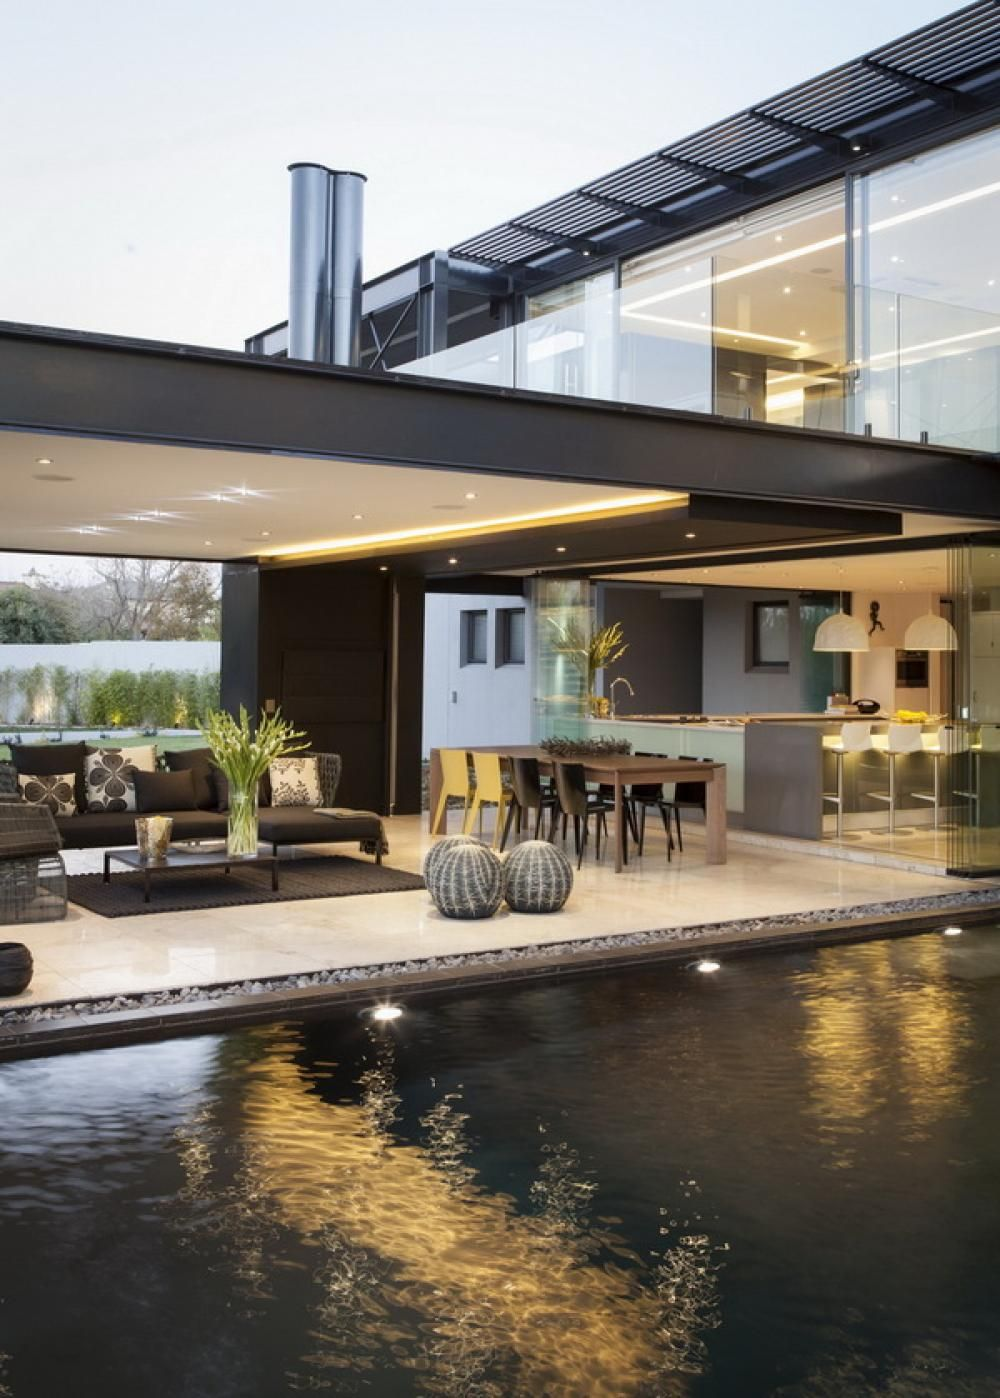 25 Best Modern Outdoor Design Ideas Fancy Room and House